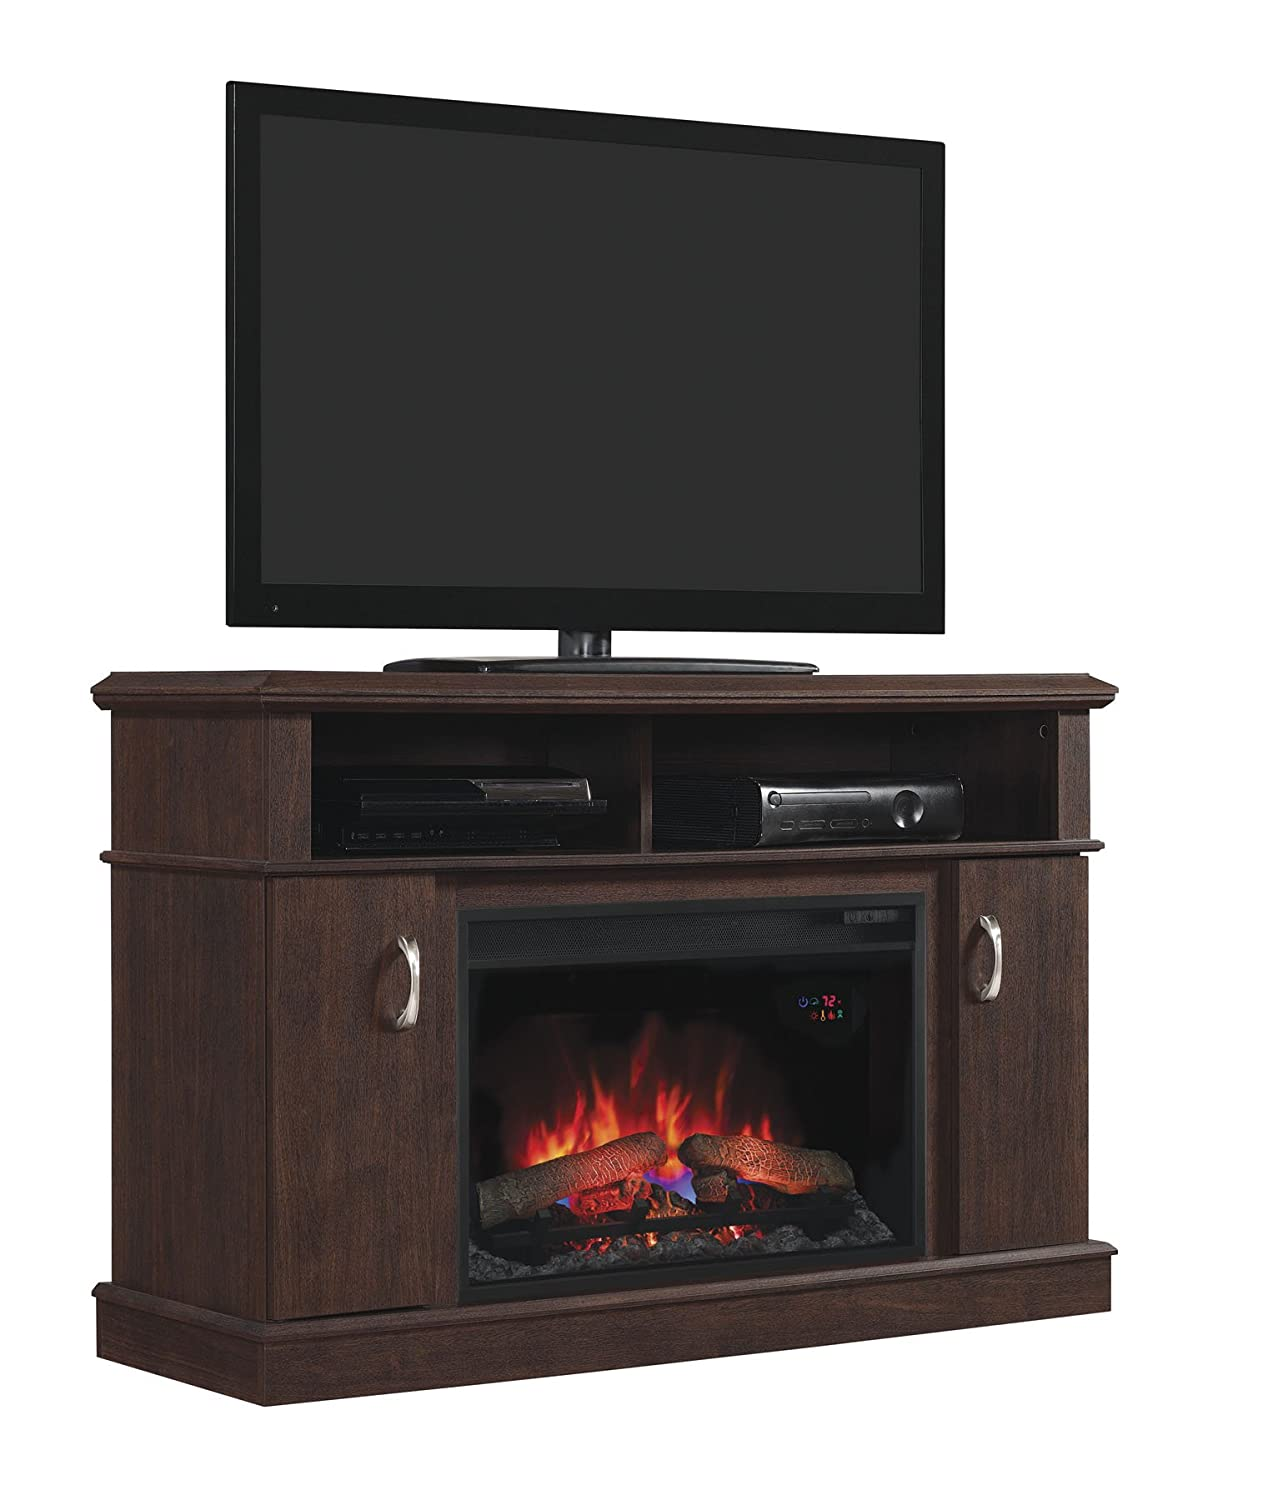 Amazoncom Dwell Infrared Electric Fireplace Entertainment Center